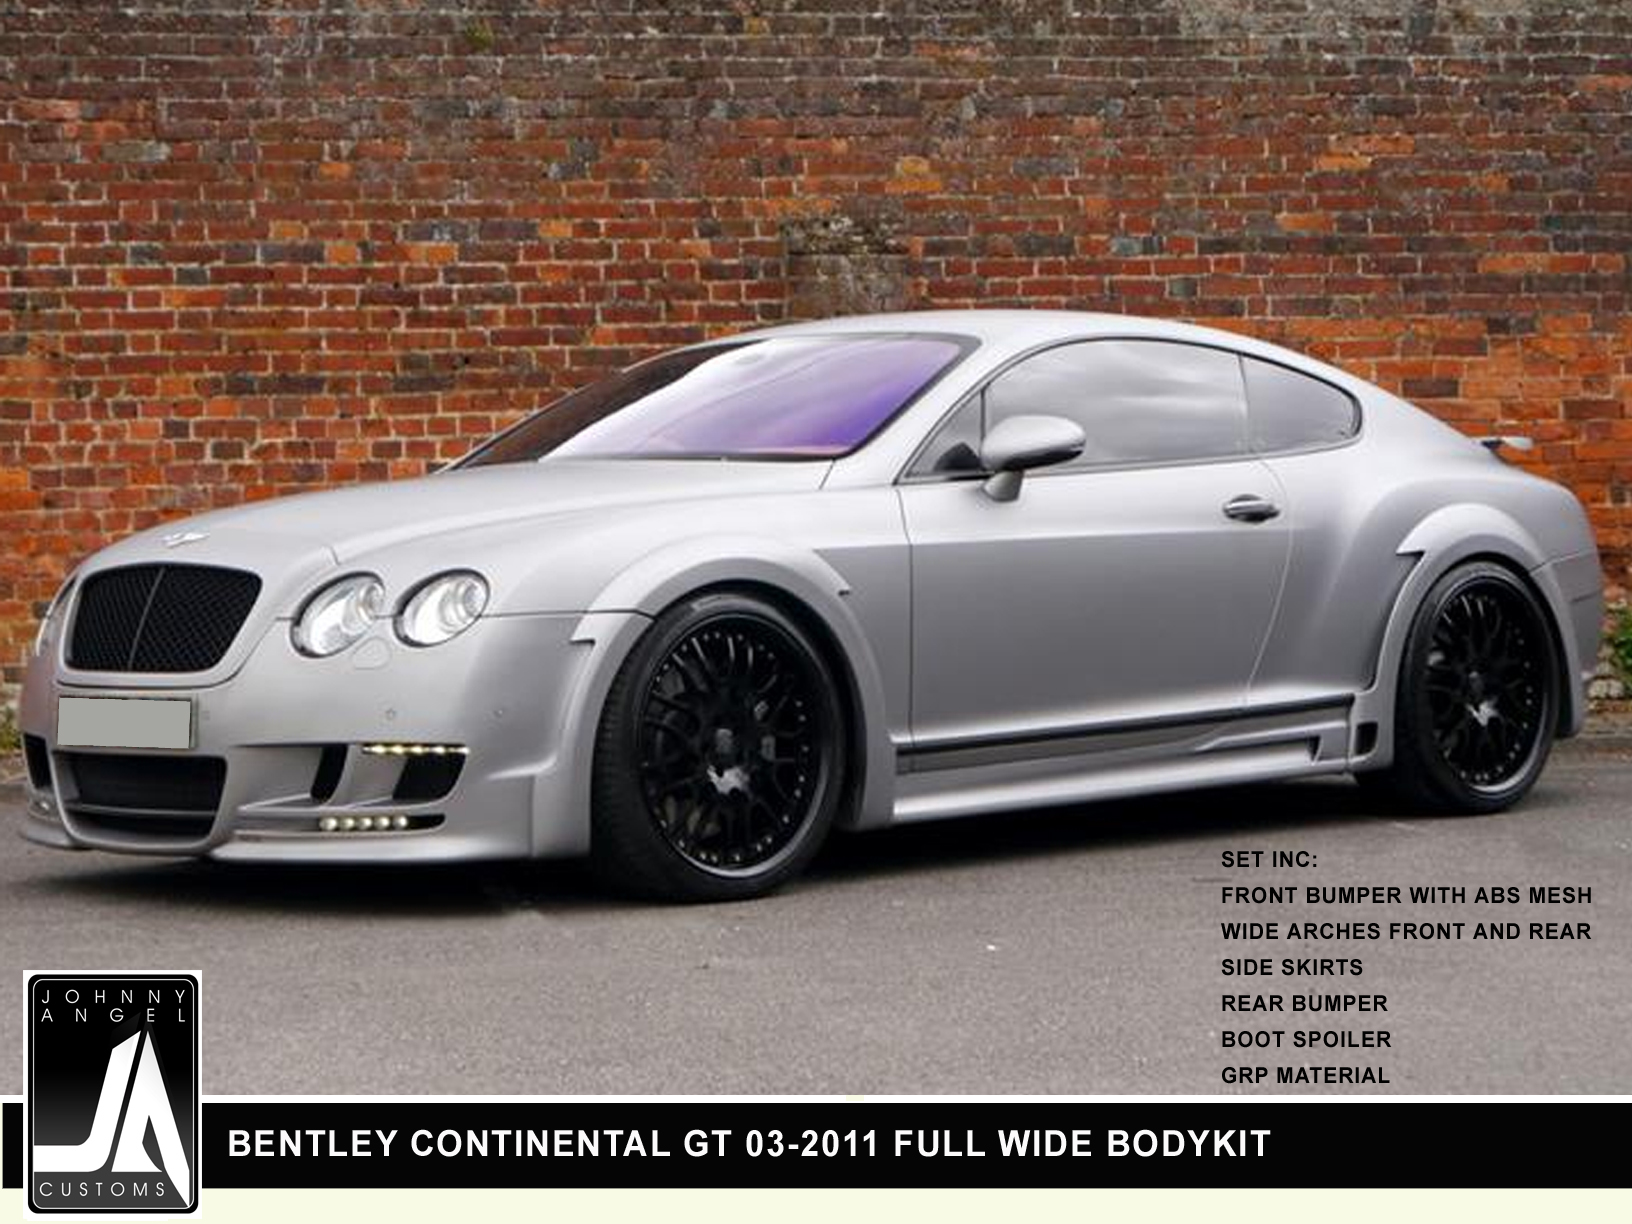 BENTLEY CONTINENTAL GT 03-2011 FULL WIDE BODYKIT  By Johnny Angel Customs pic 1